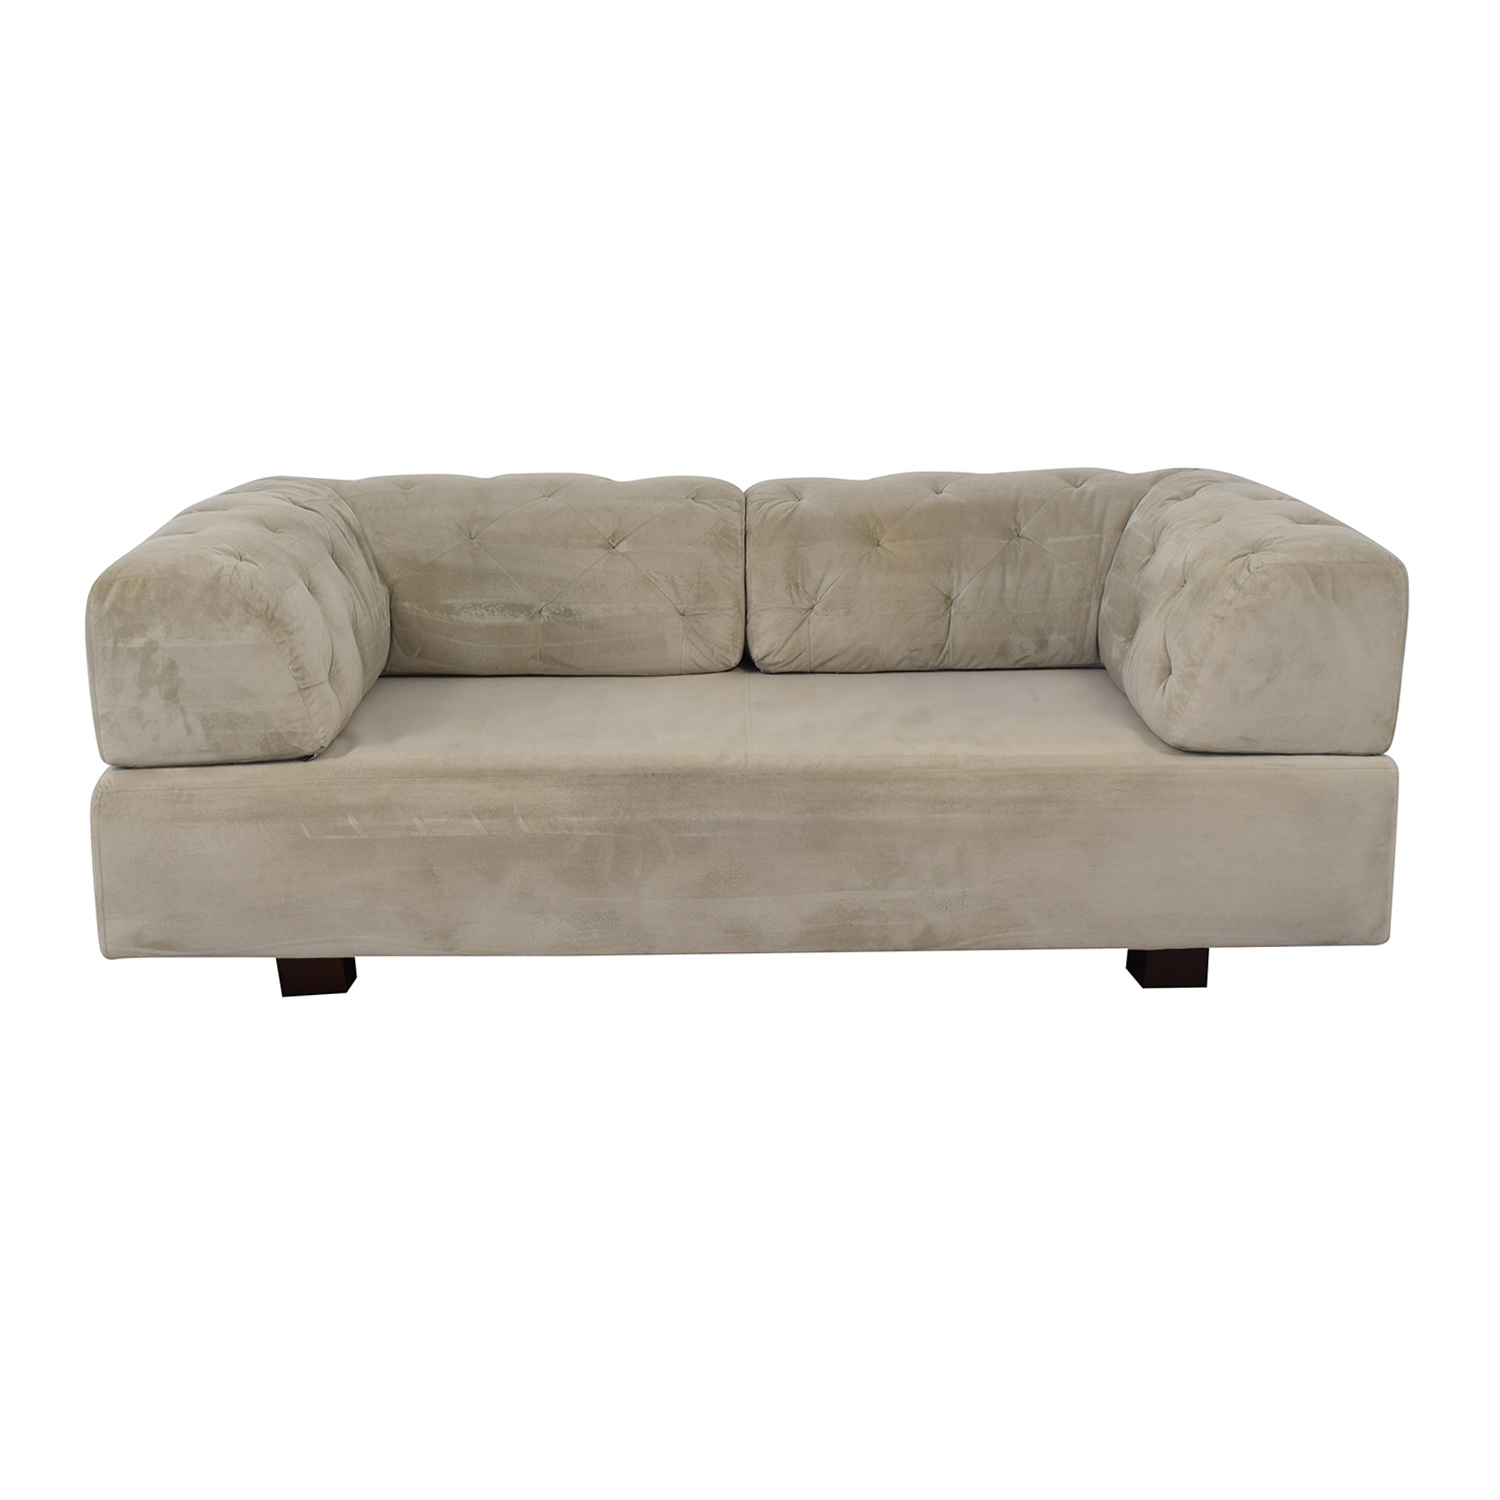 West Elm West Elm Tillary Tufted Sofa with Two Corner Cushions nj